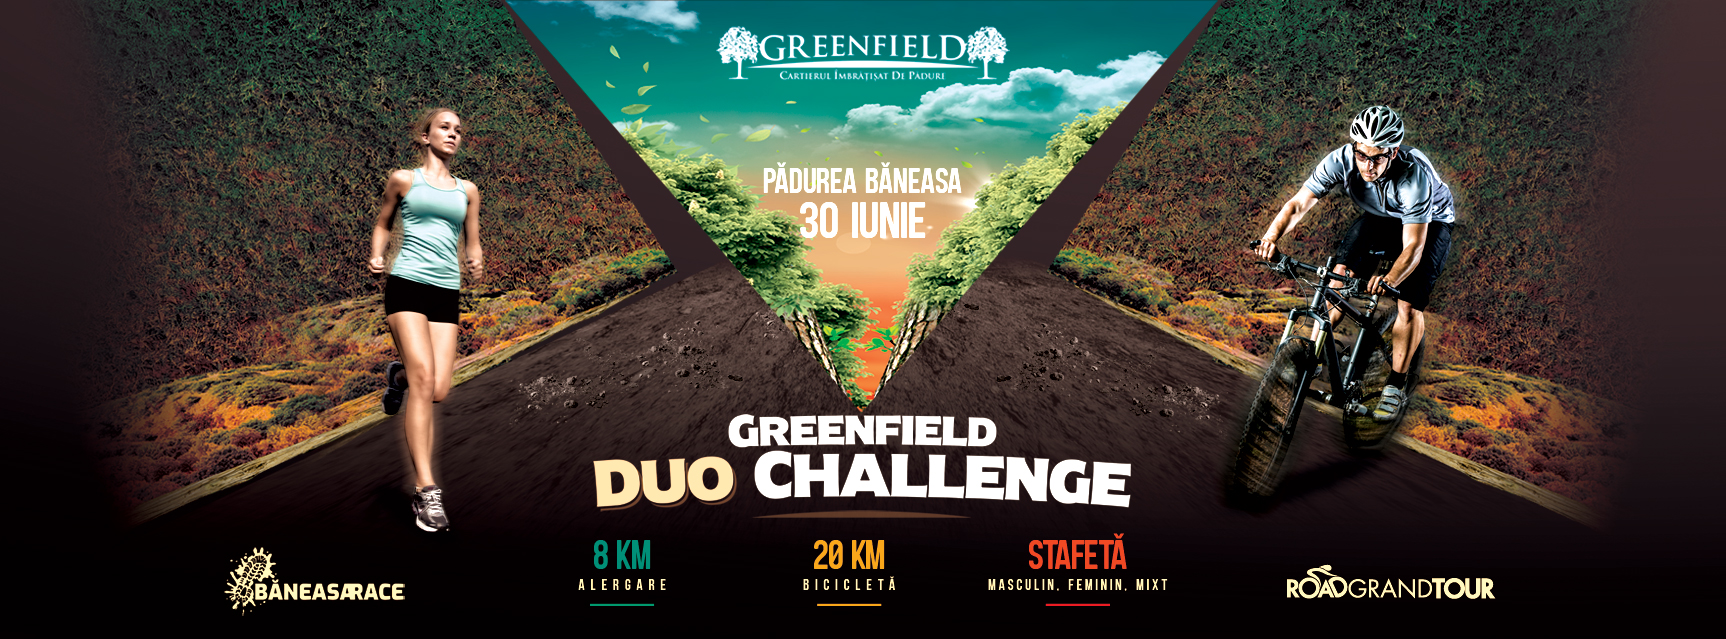 Greenfield DUO Challenge